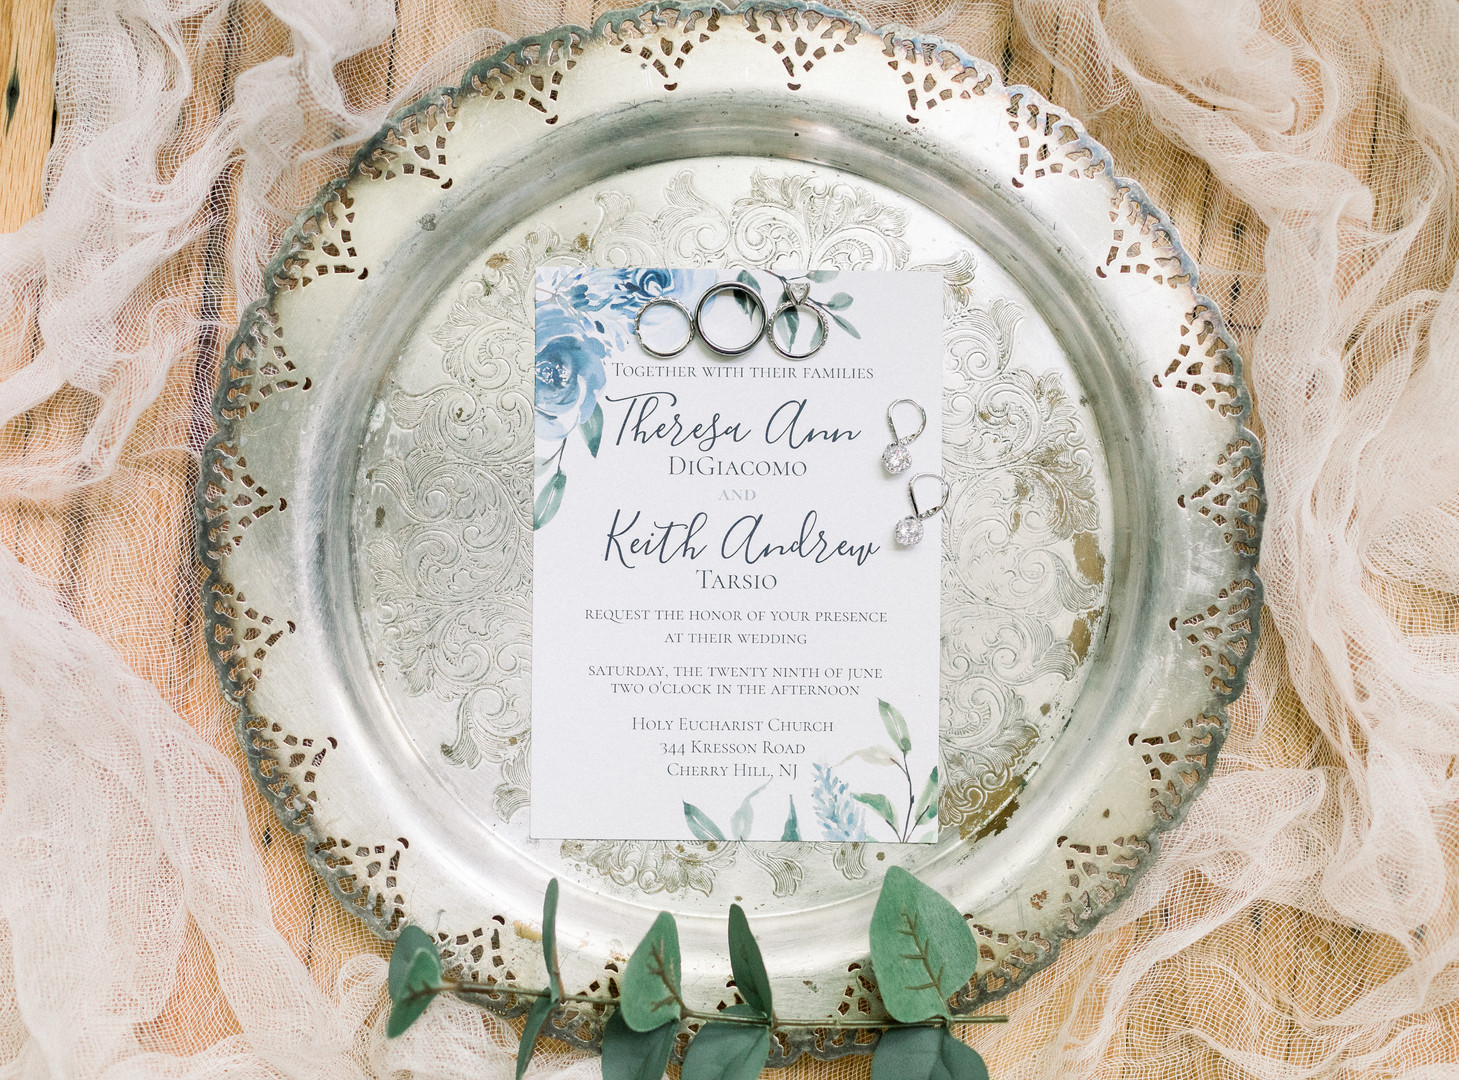 Terry and Keith's Wedding - 2.jpg